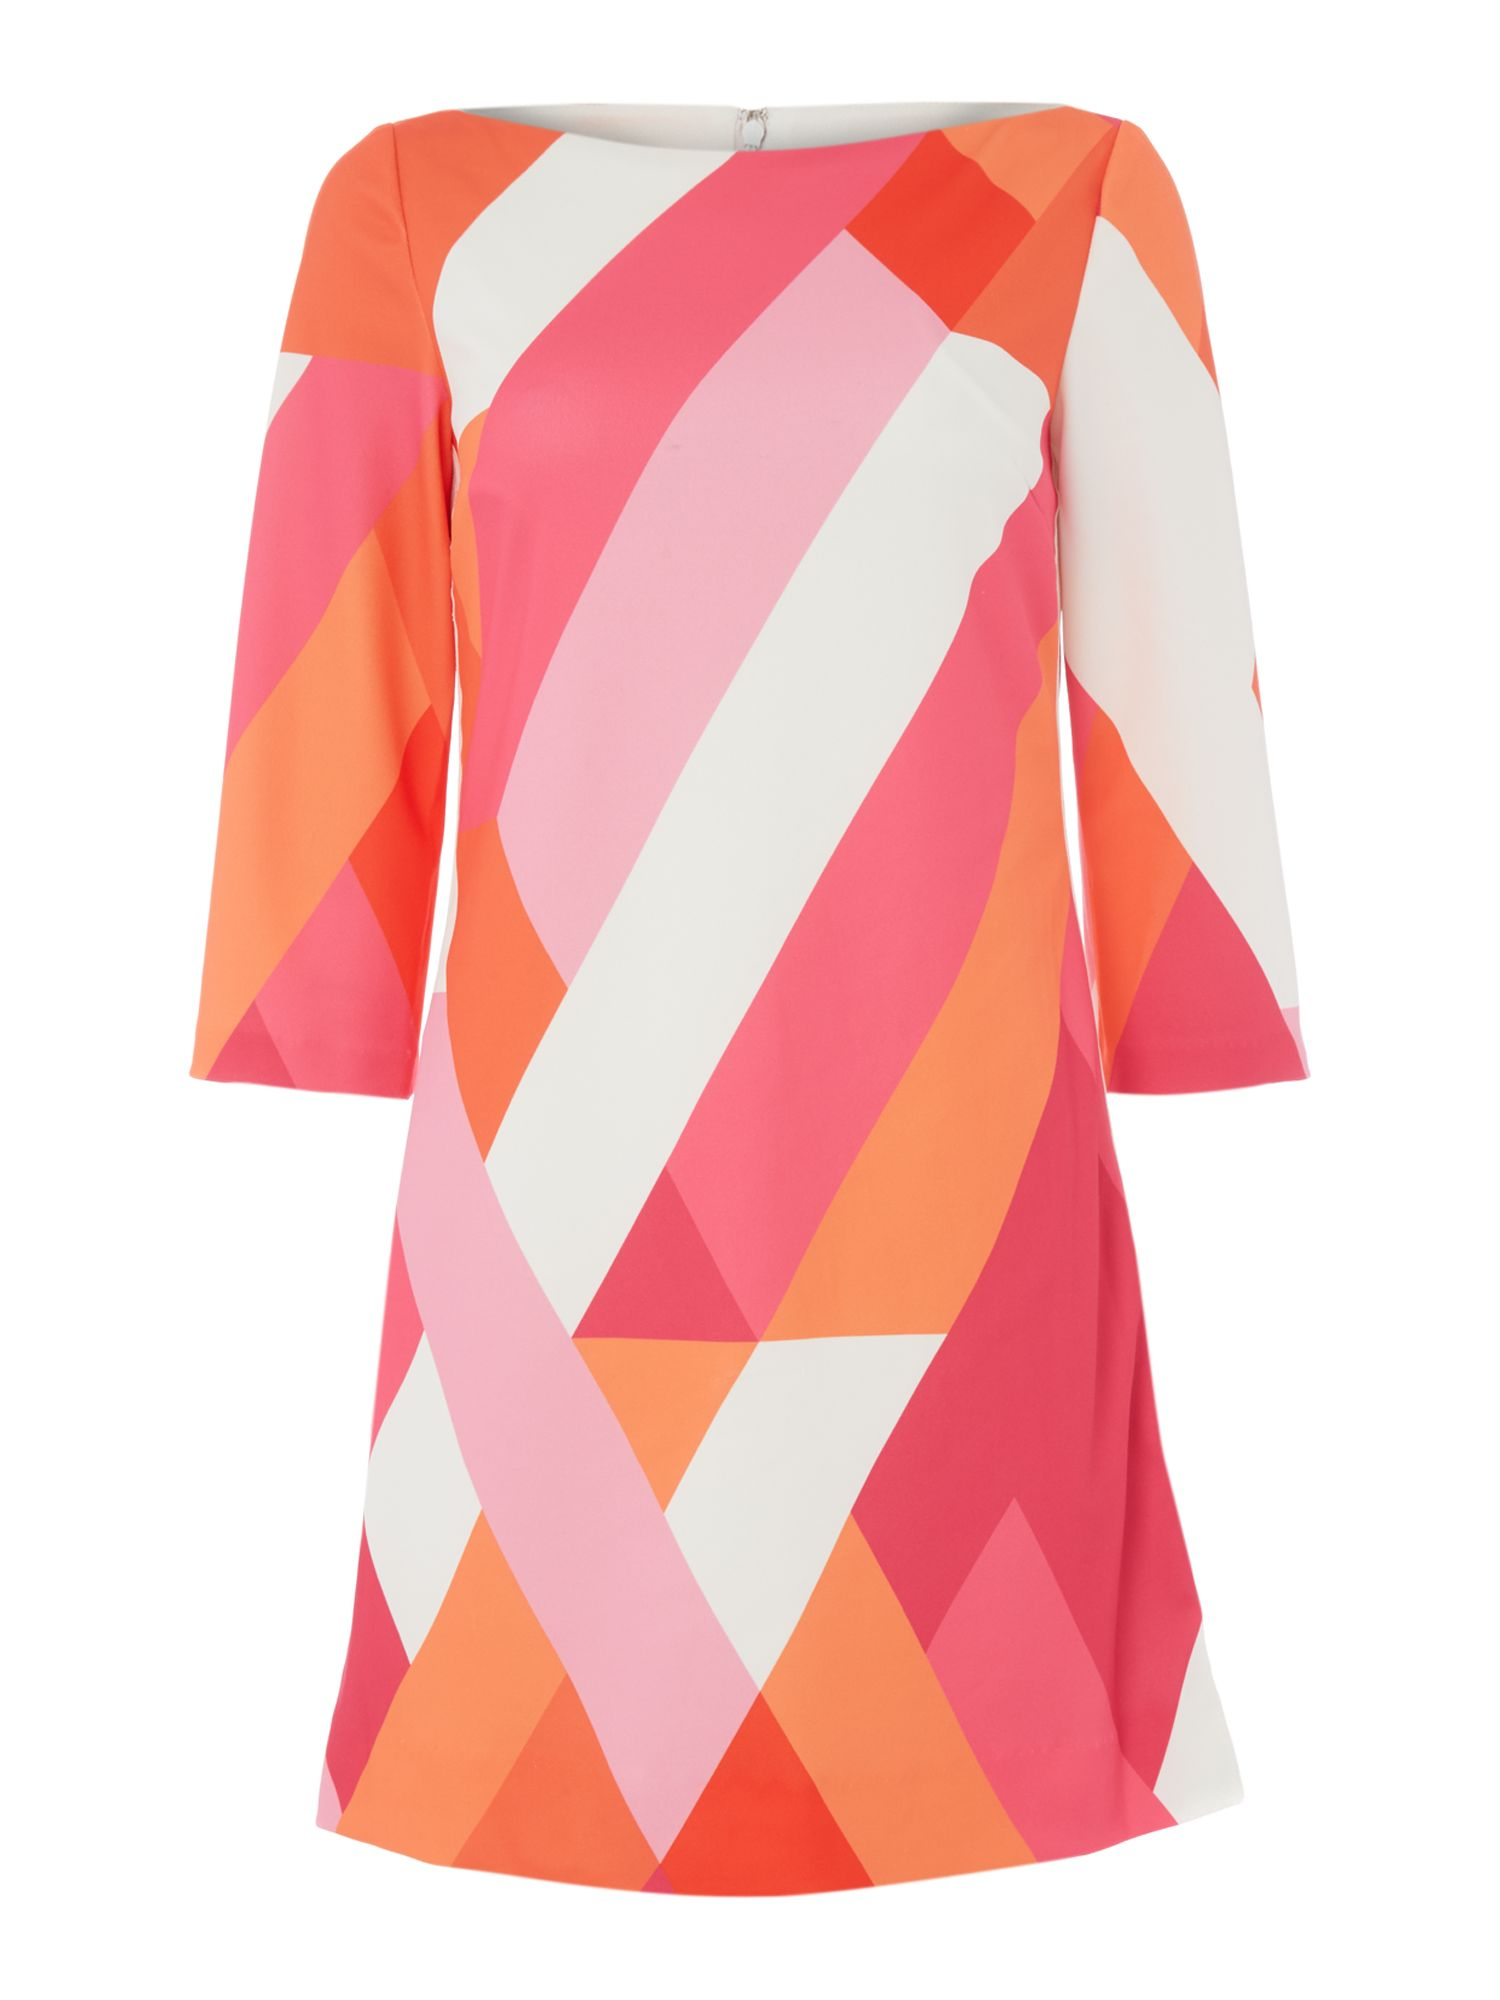 Tahari ASL Virant Geometric Print Dress, Multi-Coloured